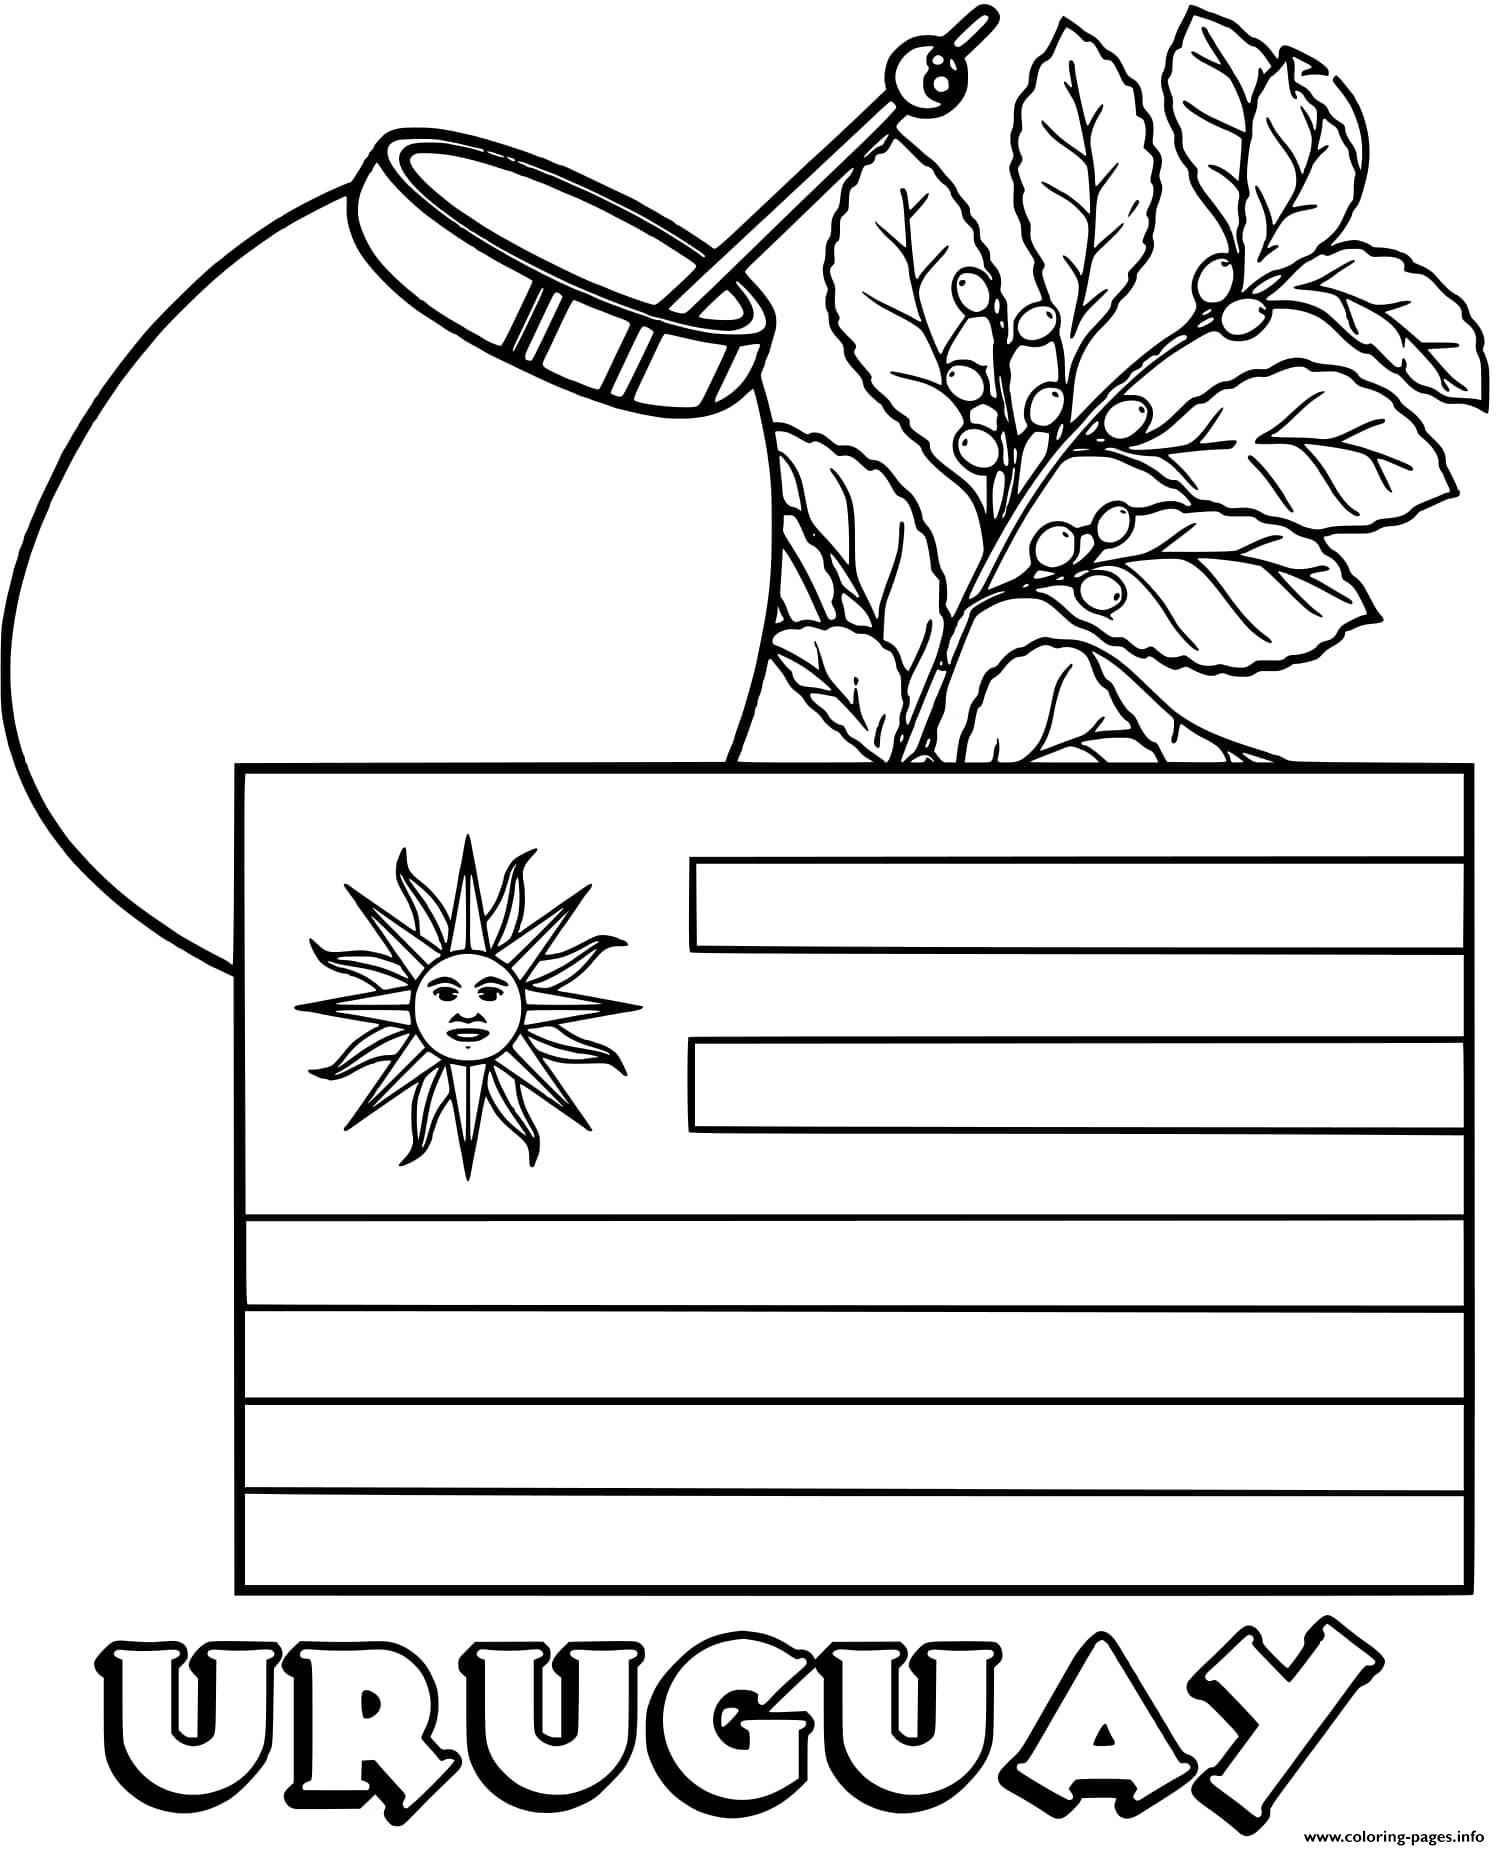 Print Uruguay Flag Yerba Mate Coloring Pages Flag Coloring Pages